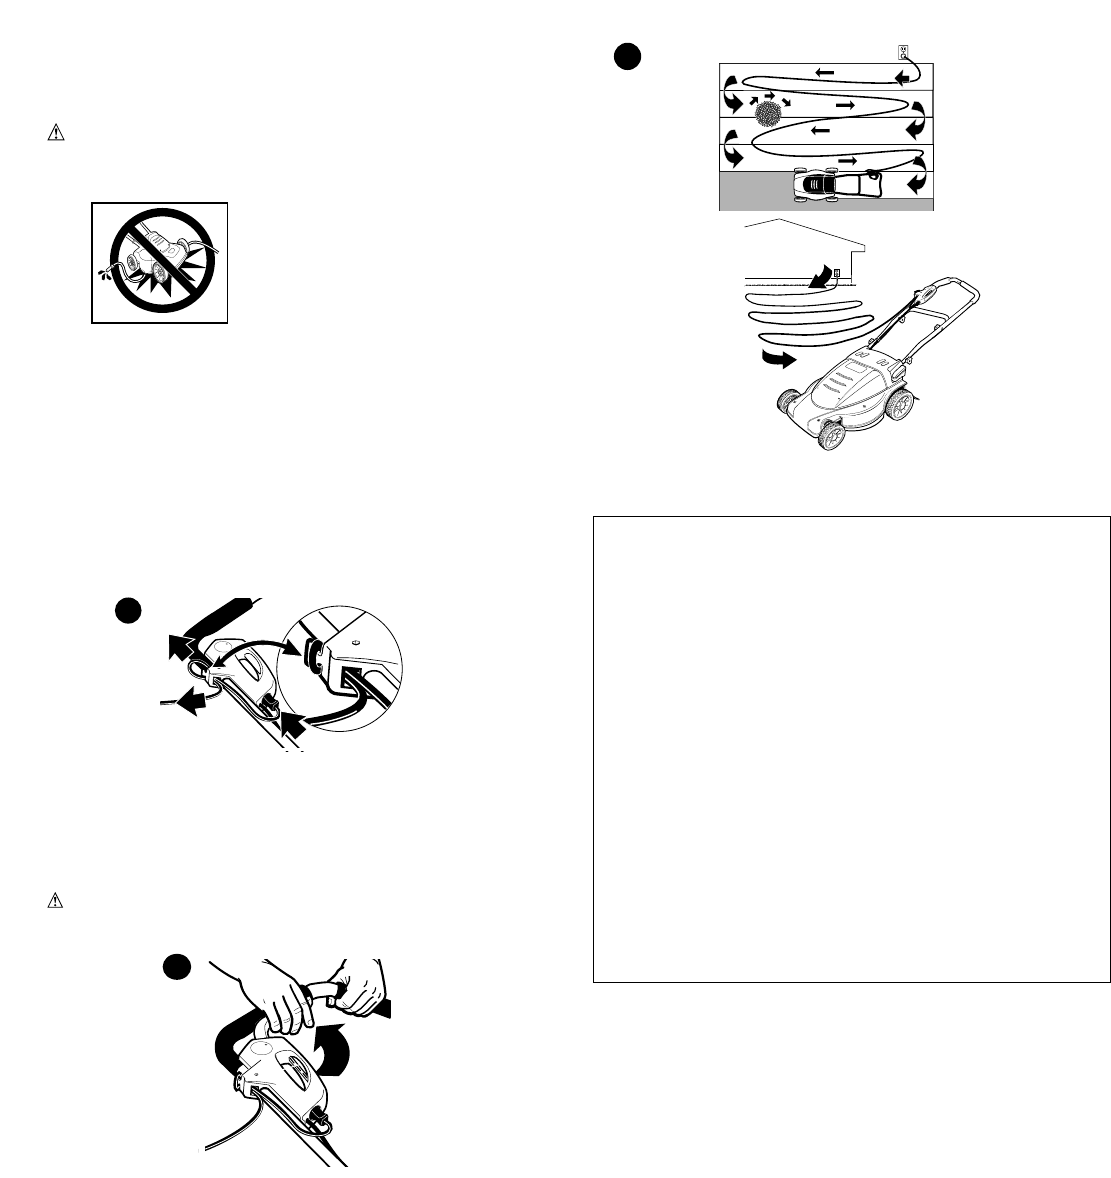 Black Decker Mm875 Wiring Diagram House Symbols Amp Lawn Mower Free Engine Image For User Manual Download And